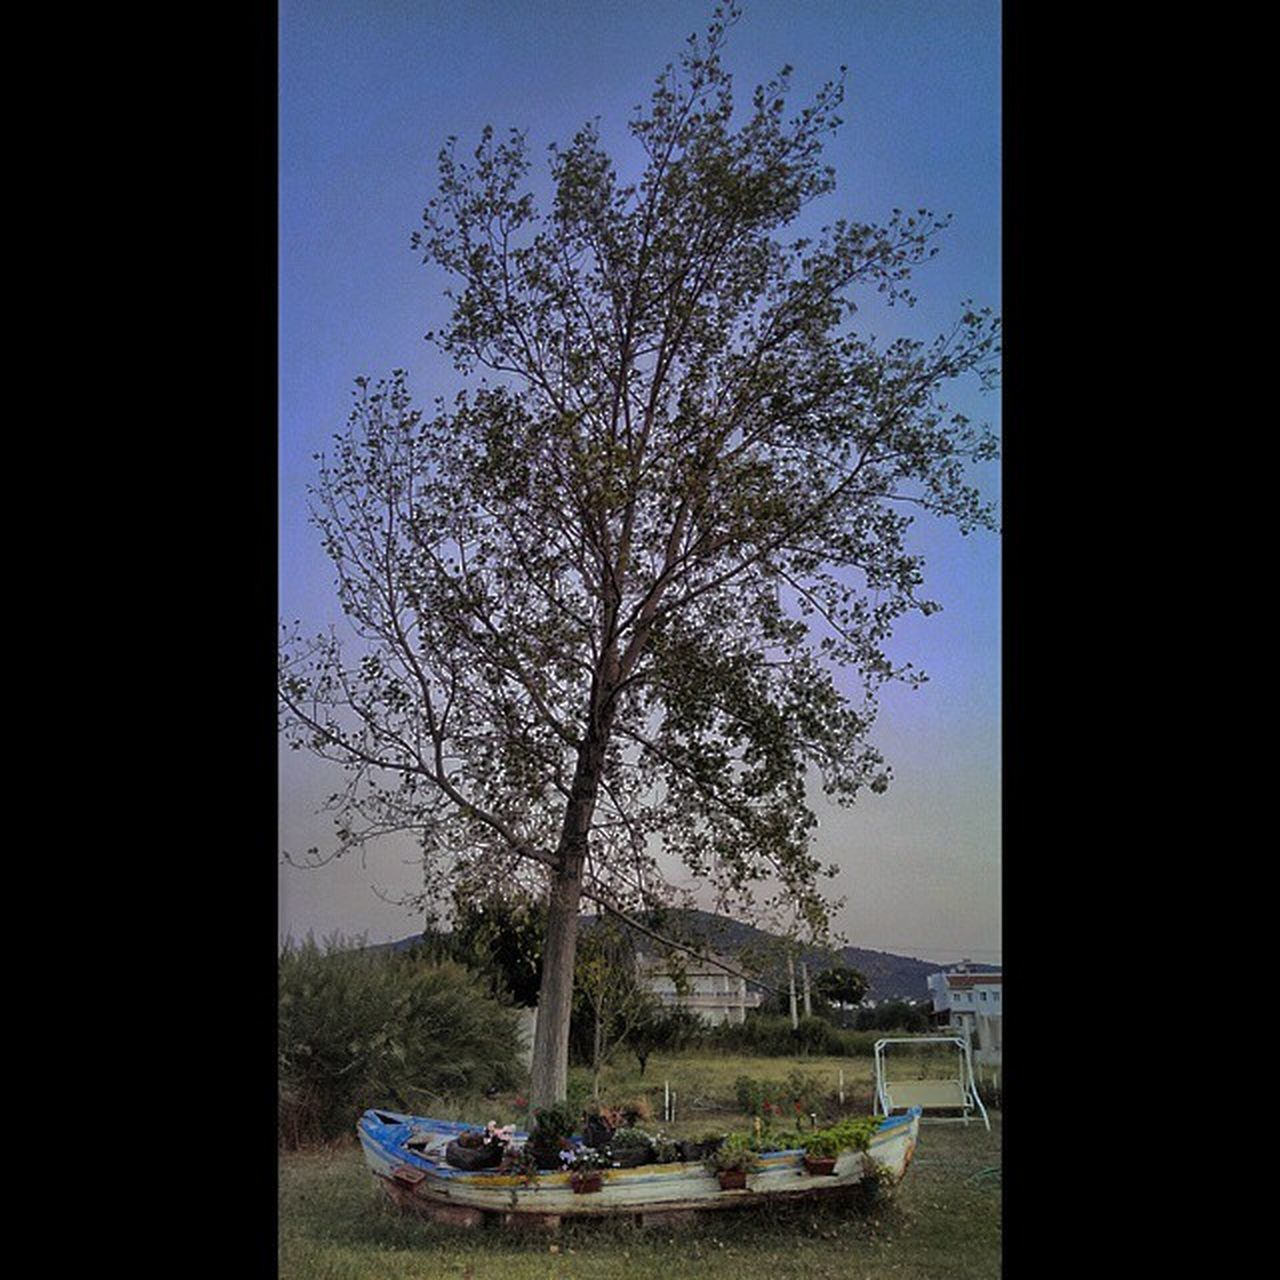 tree, sky, outdoors, table, day, nature, no people, bare tree, nautical vessel, water, beauty in nature, clear sky